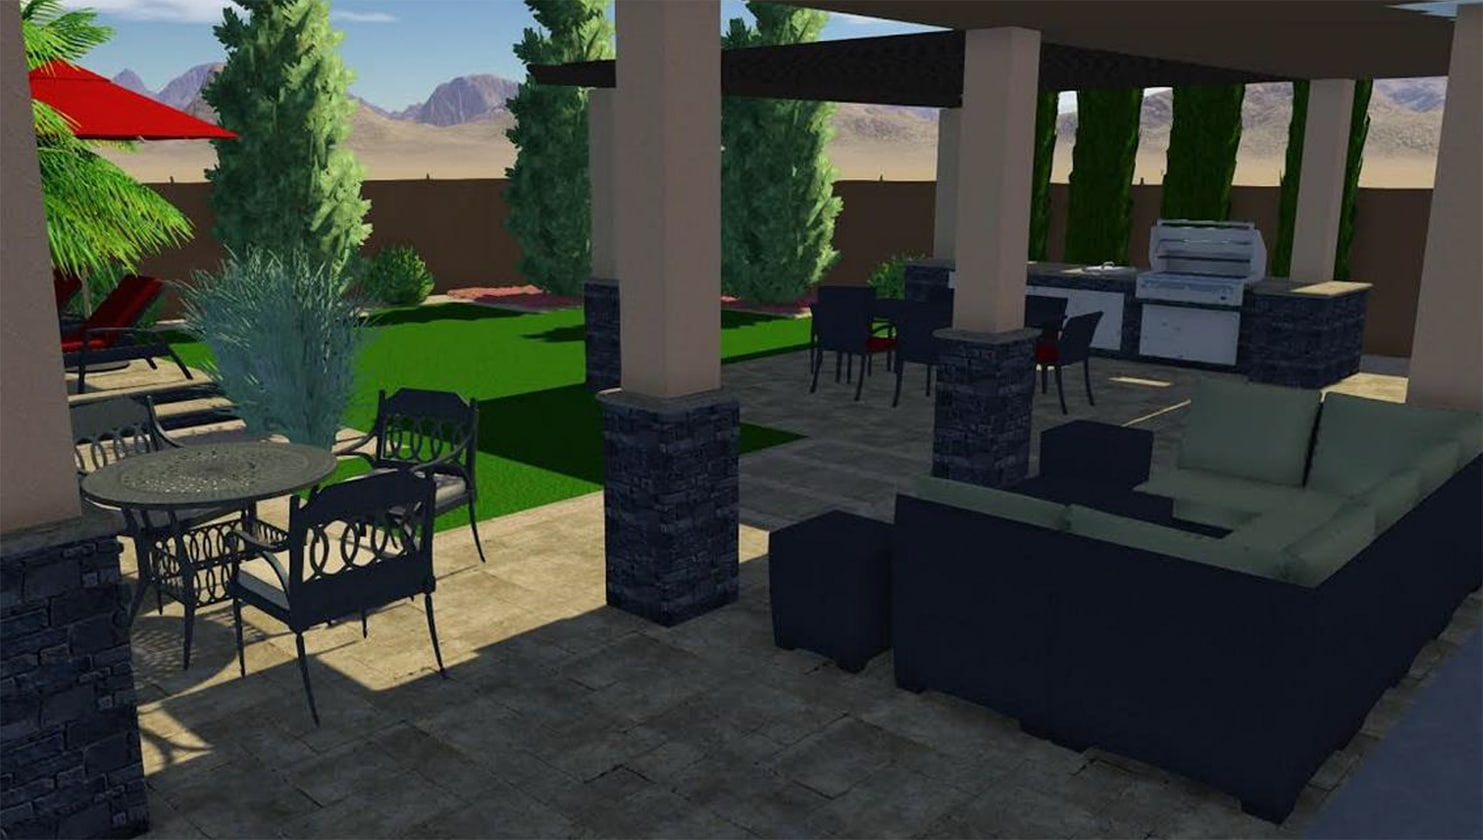 3-D design showing what a covered outdoor kitchen and lounge area would look like when finished.